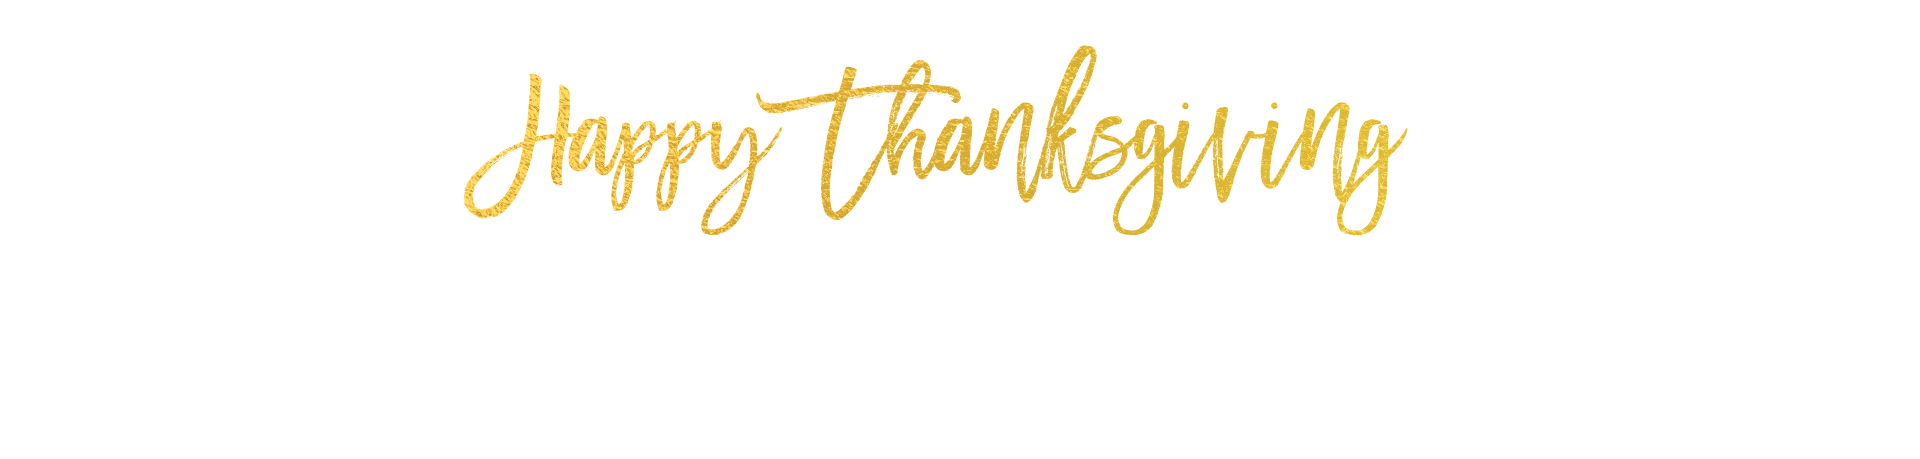 Happy Thanksgiving Banner Png (105+ images in Collection) Page 1.